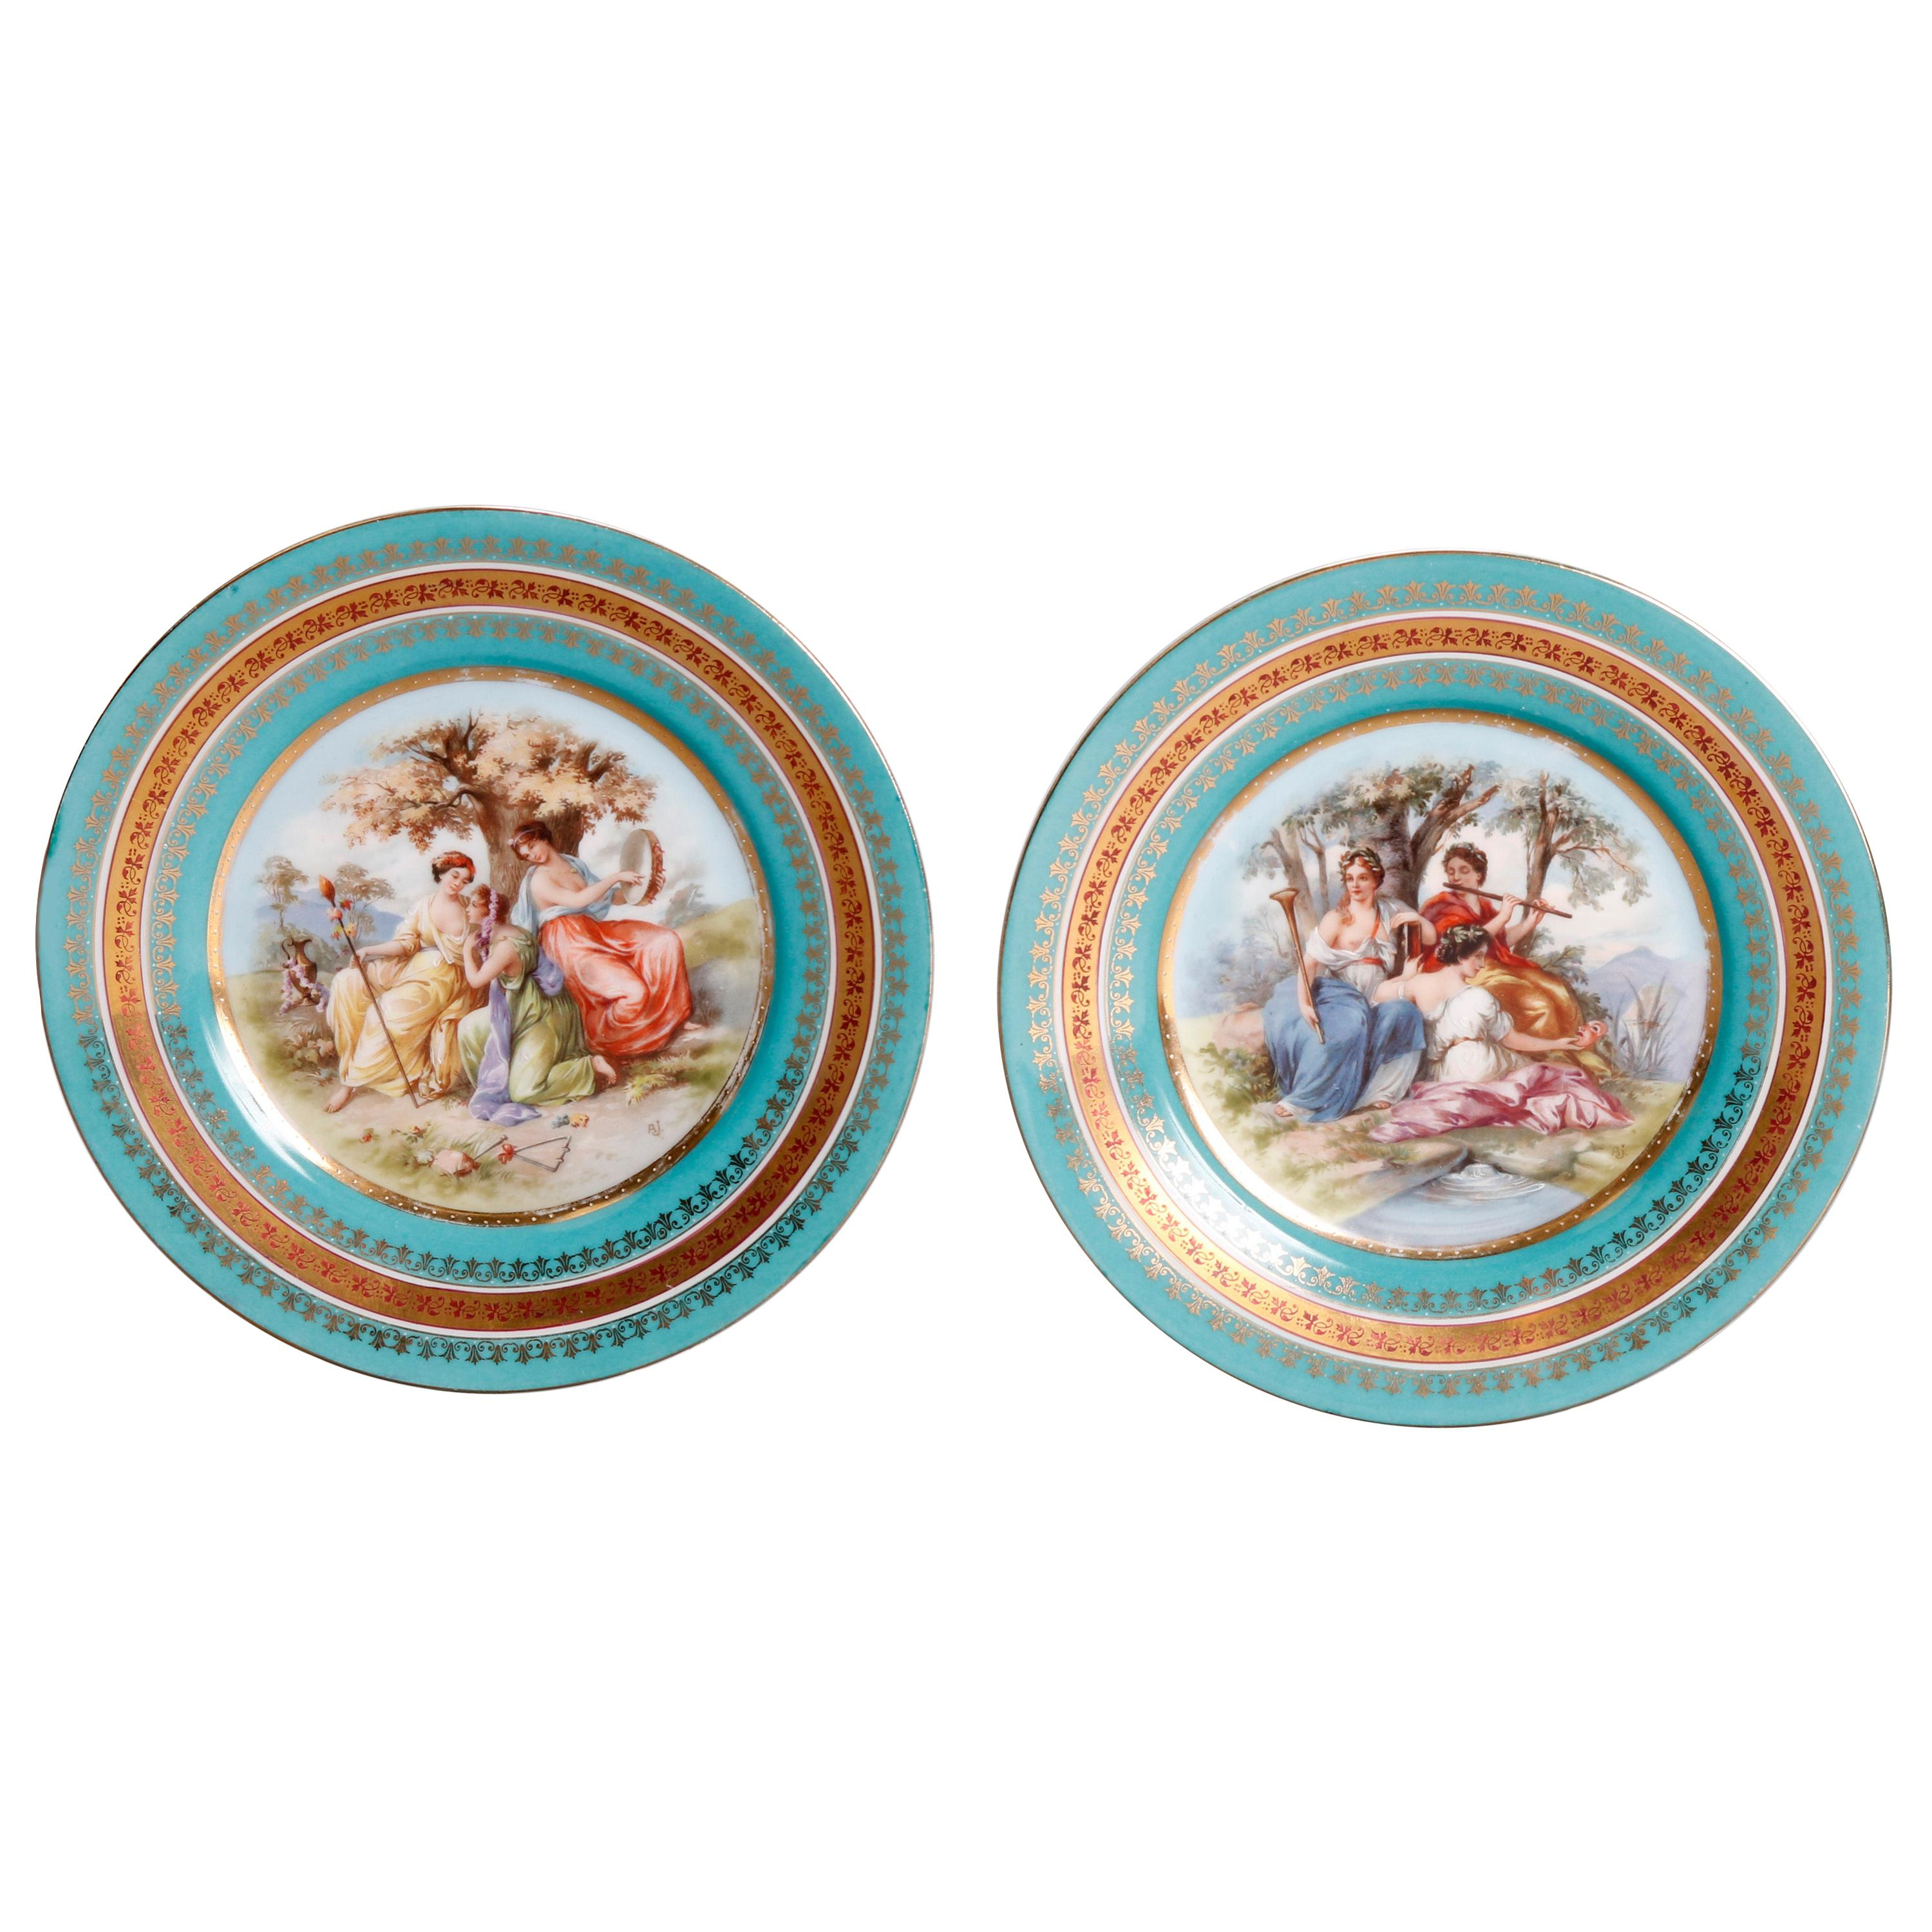 Two Antique Royal Vienna Porcelain Plates, Classical Muses, circa 1890